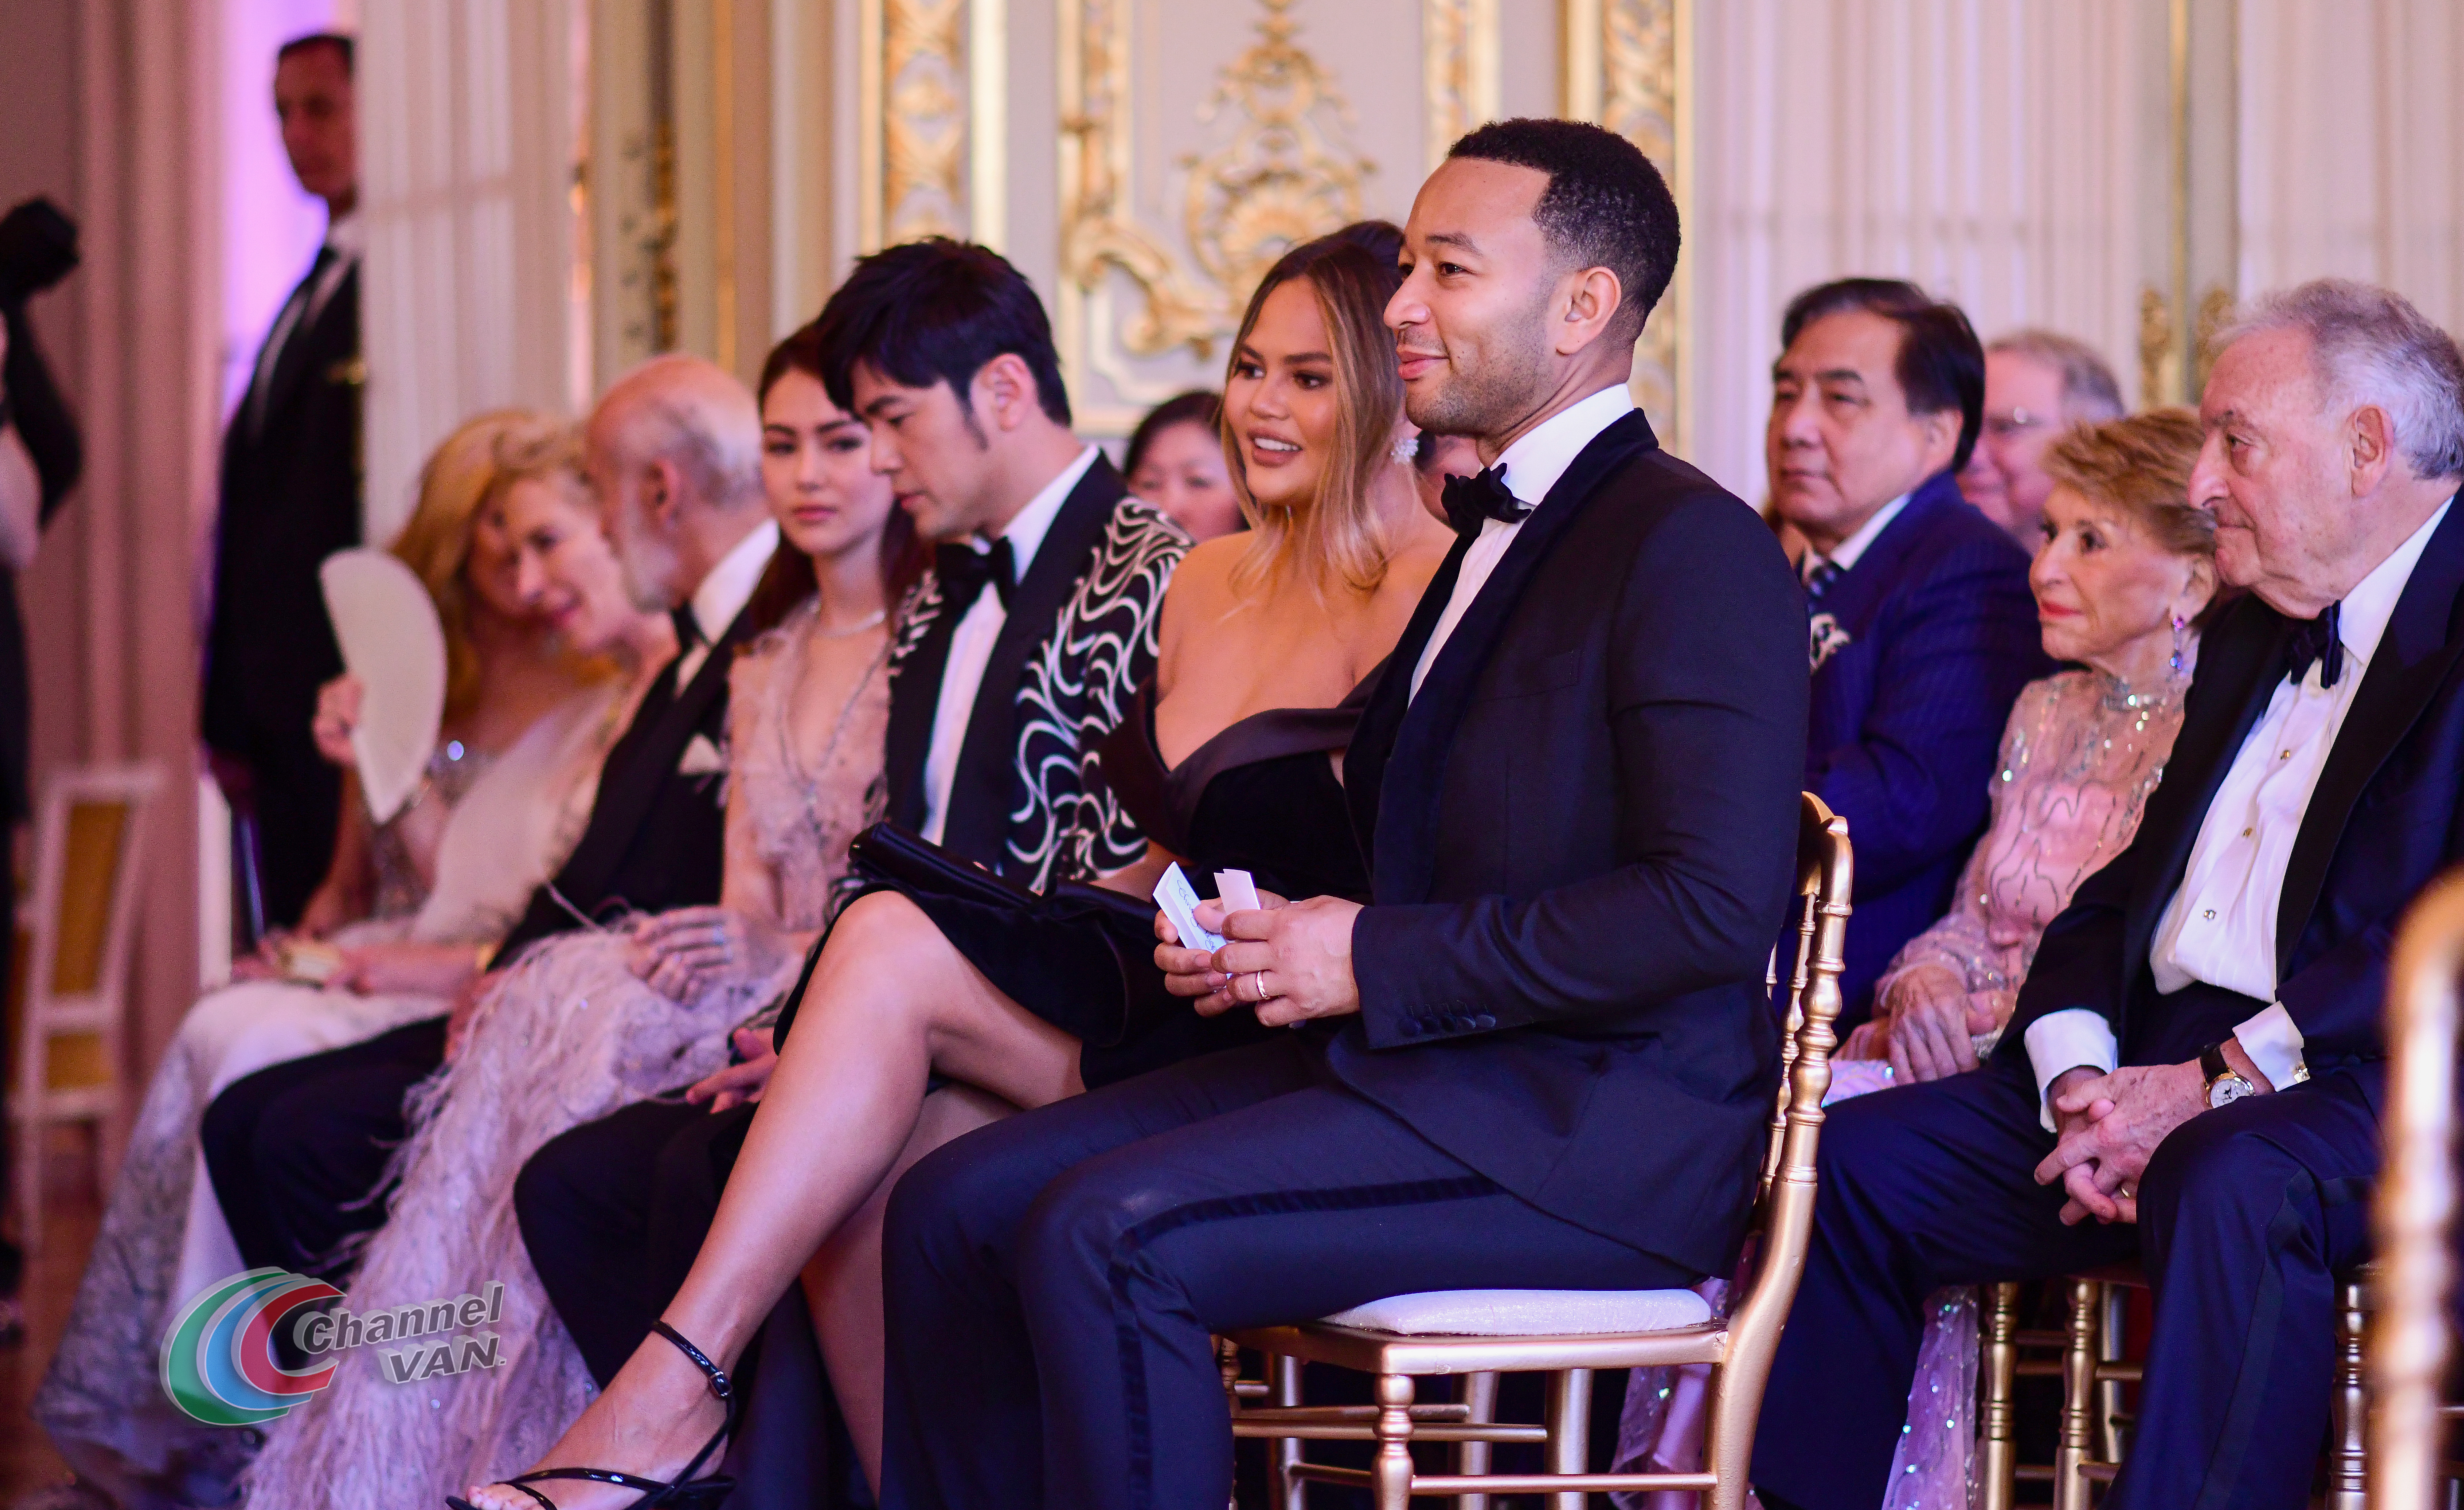 PARIS, FRANCE - JUNE 02: (4L-R) Hannah Quinlivan, Jay Chou, Chrissy Teigen and John Legend attend Pianists Lang Lang & Gina Alice Cocktail Wedding at Hotel Shangri-La on June 02, 2019 in Paris, France. (Photo by Anthony Ghnassia/Getty Images for Moet Henessy)